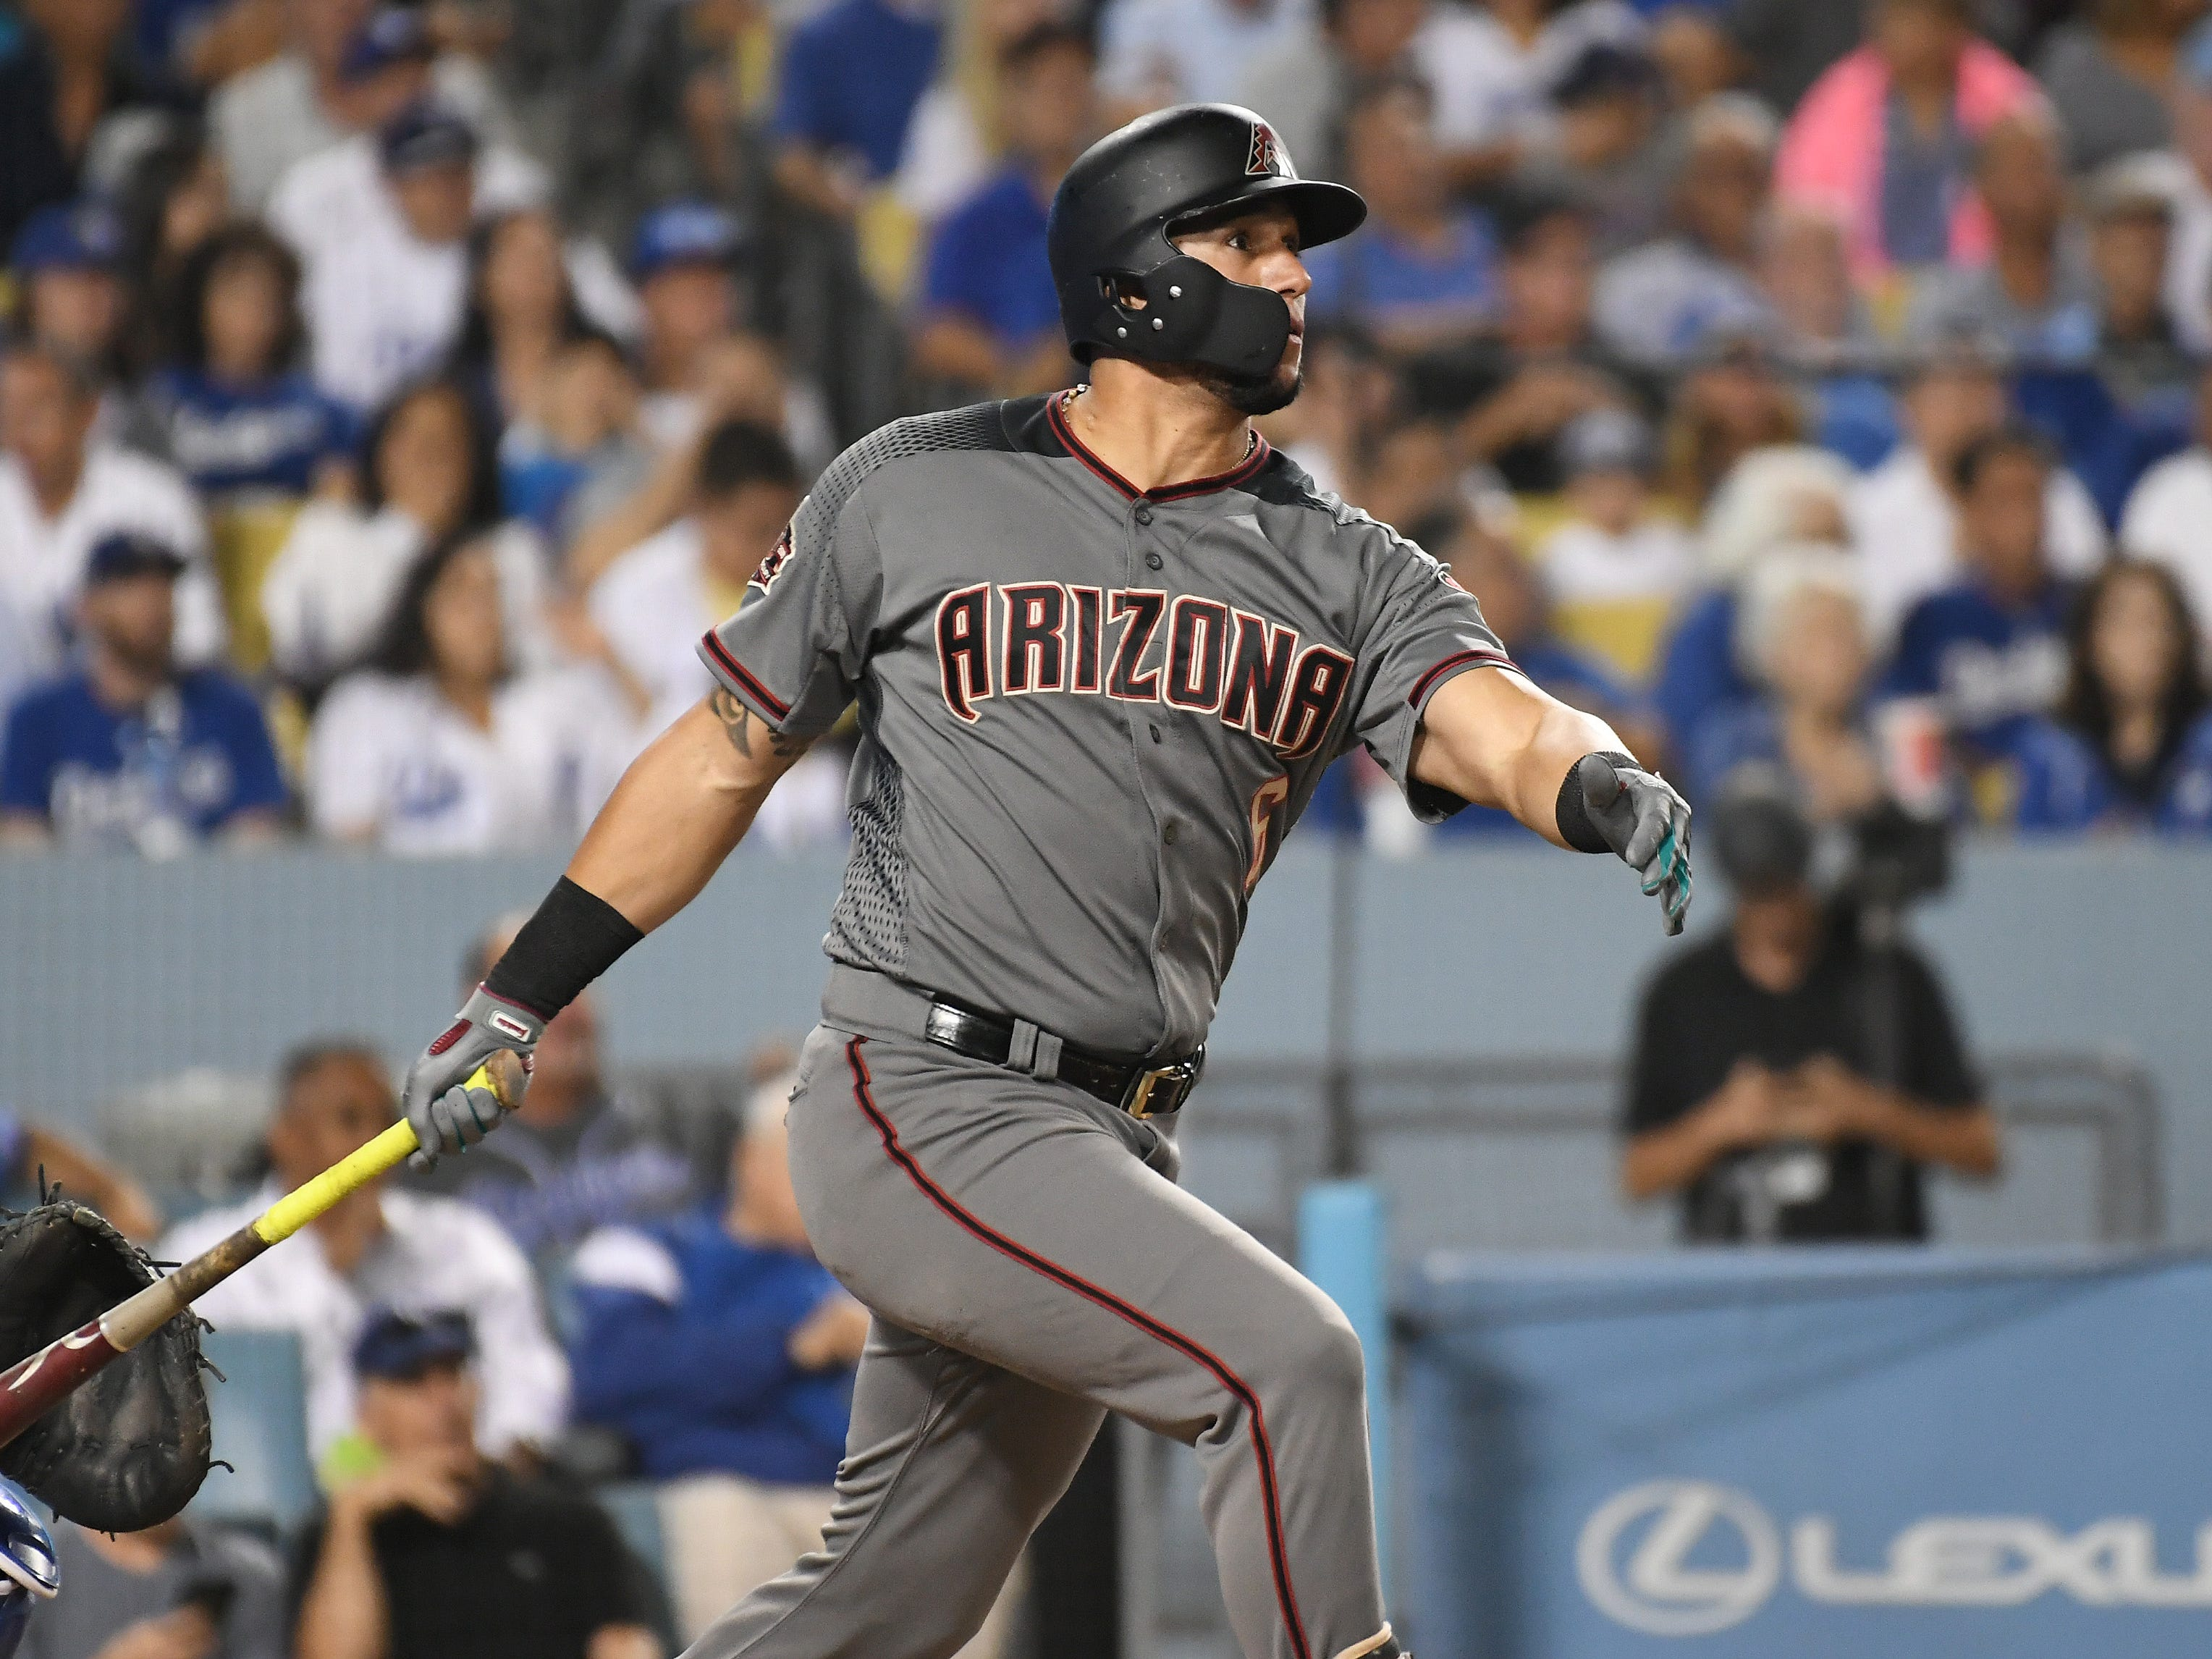 Aug 30, 2018; Los Angeles, CA, USA; Arizona Diamondbacks right fielder David Peralta (6) hits a three run home run against the Los Angeles Dodgers in the fifth inning at Dodger Stadium. Mandatory Credit: Richard Mackson-USA TODAY Sports